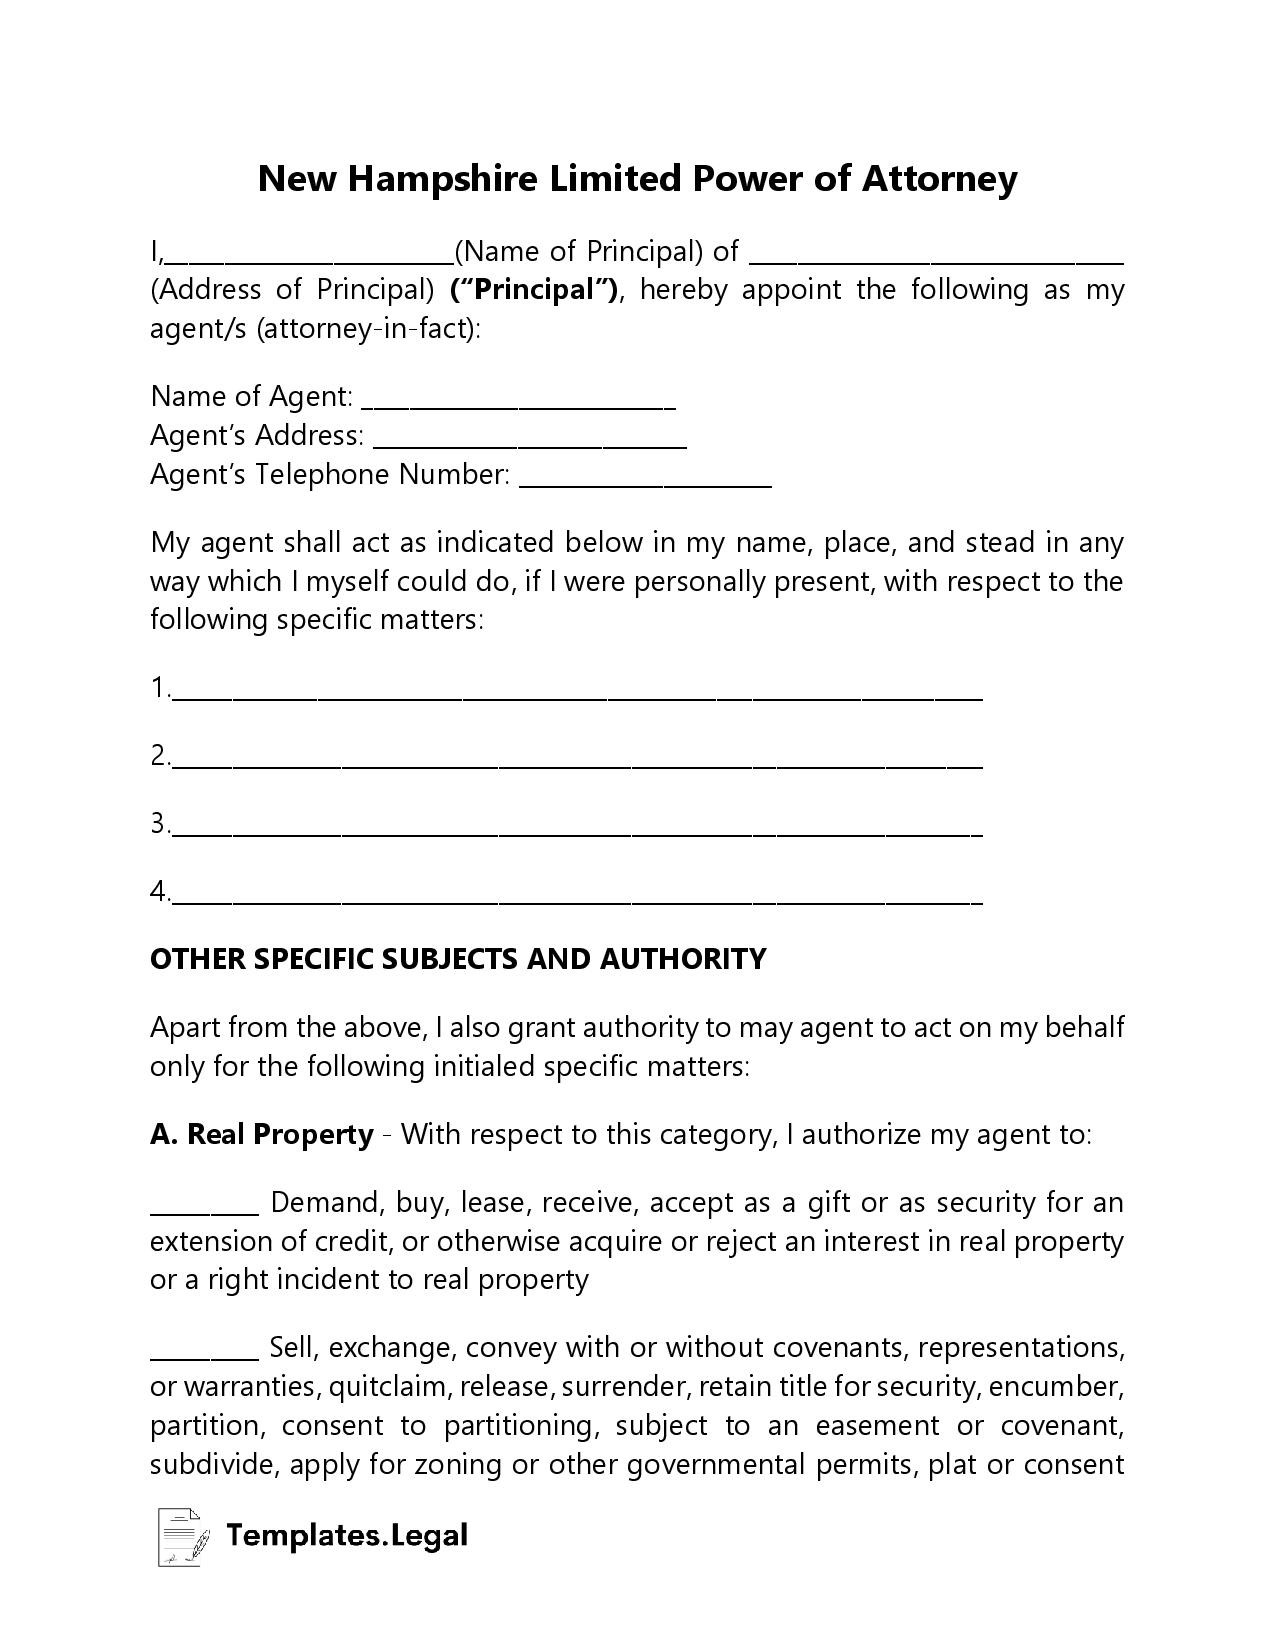 New Hampshire Limited Power of Attorney - Templates.Legal